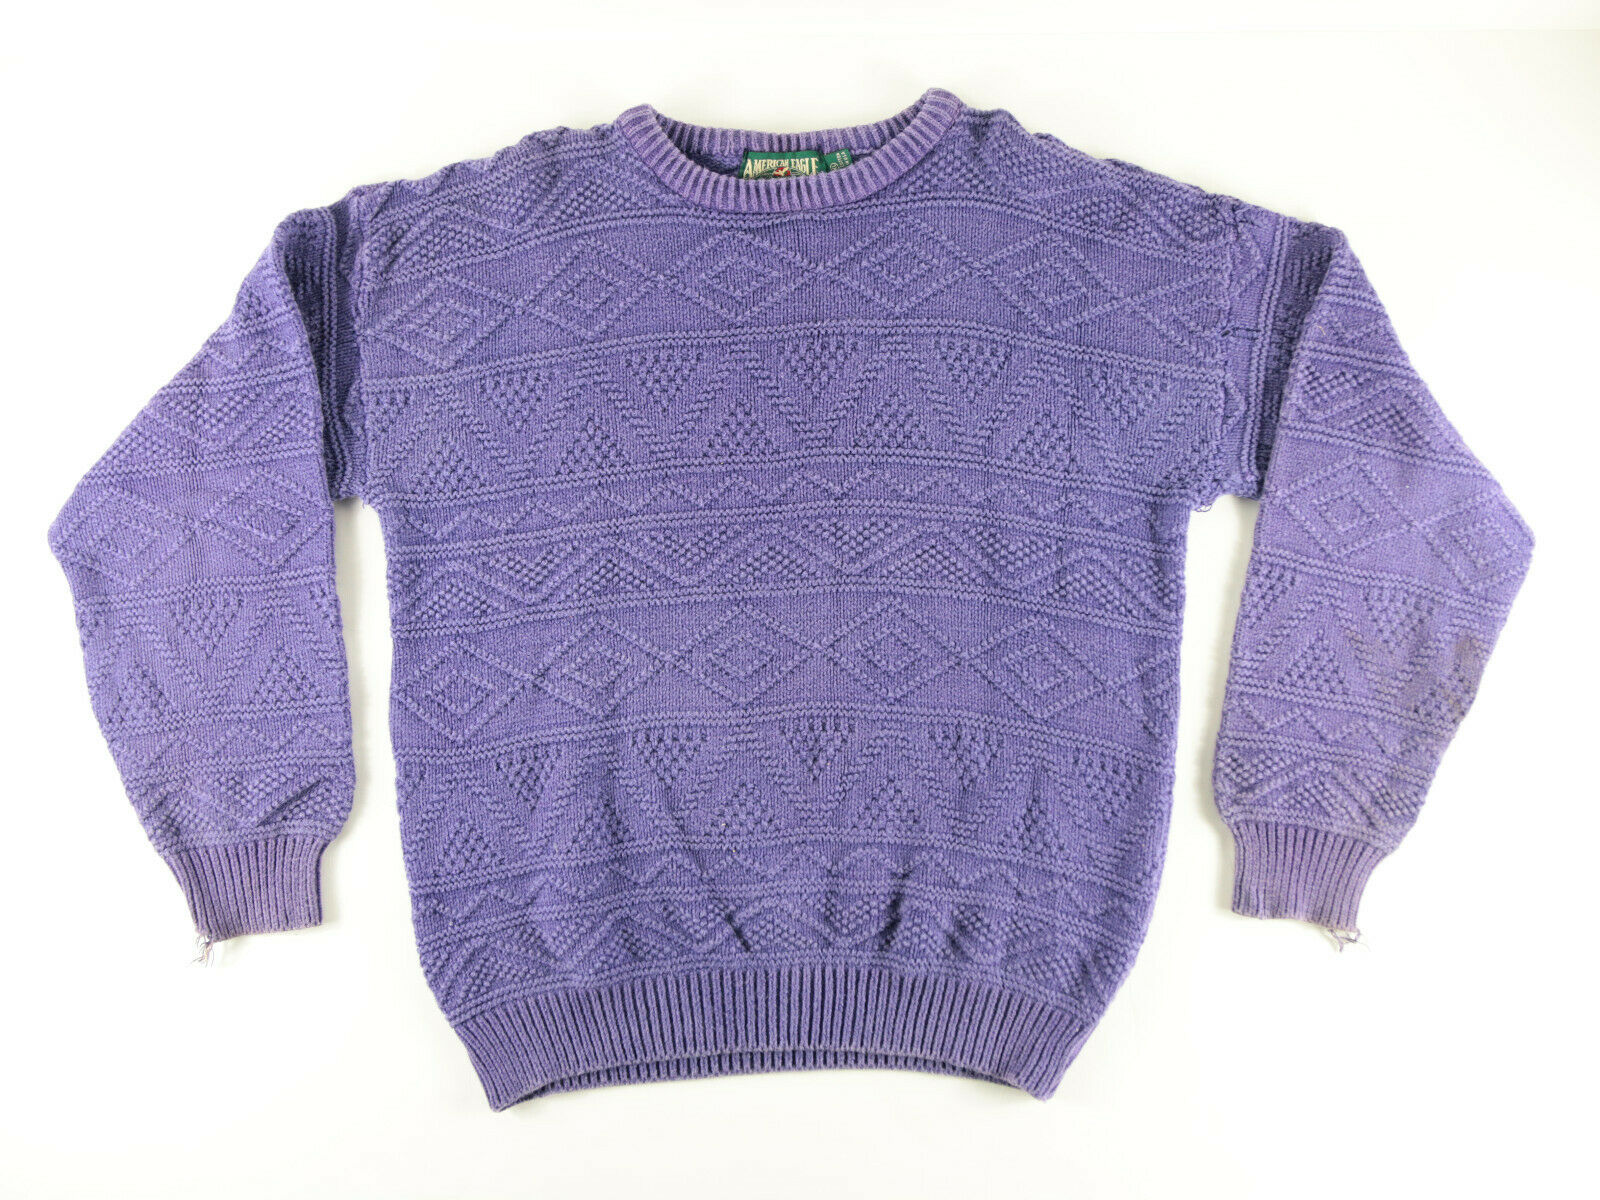 lila KNIT SWEATER BY AMERICAN EAGLE Größe XL MADE IN USA DISTRESSED VINTAGE NR